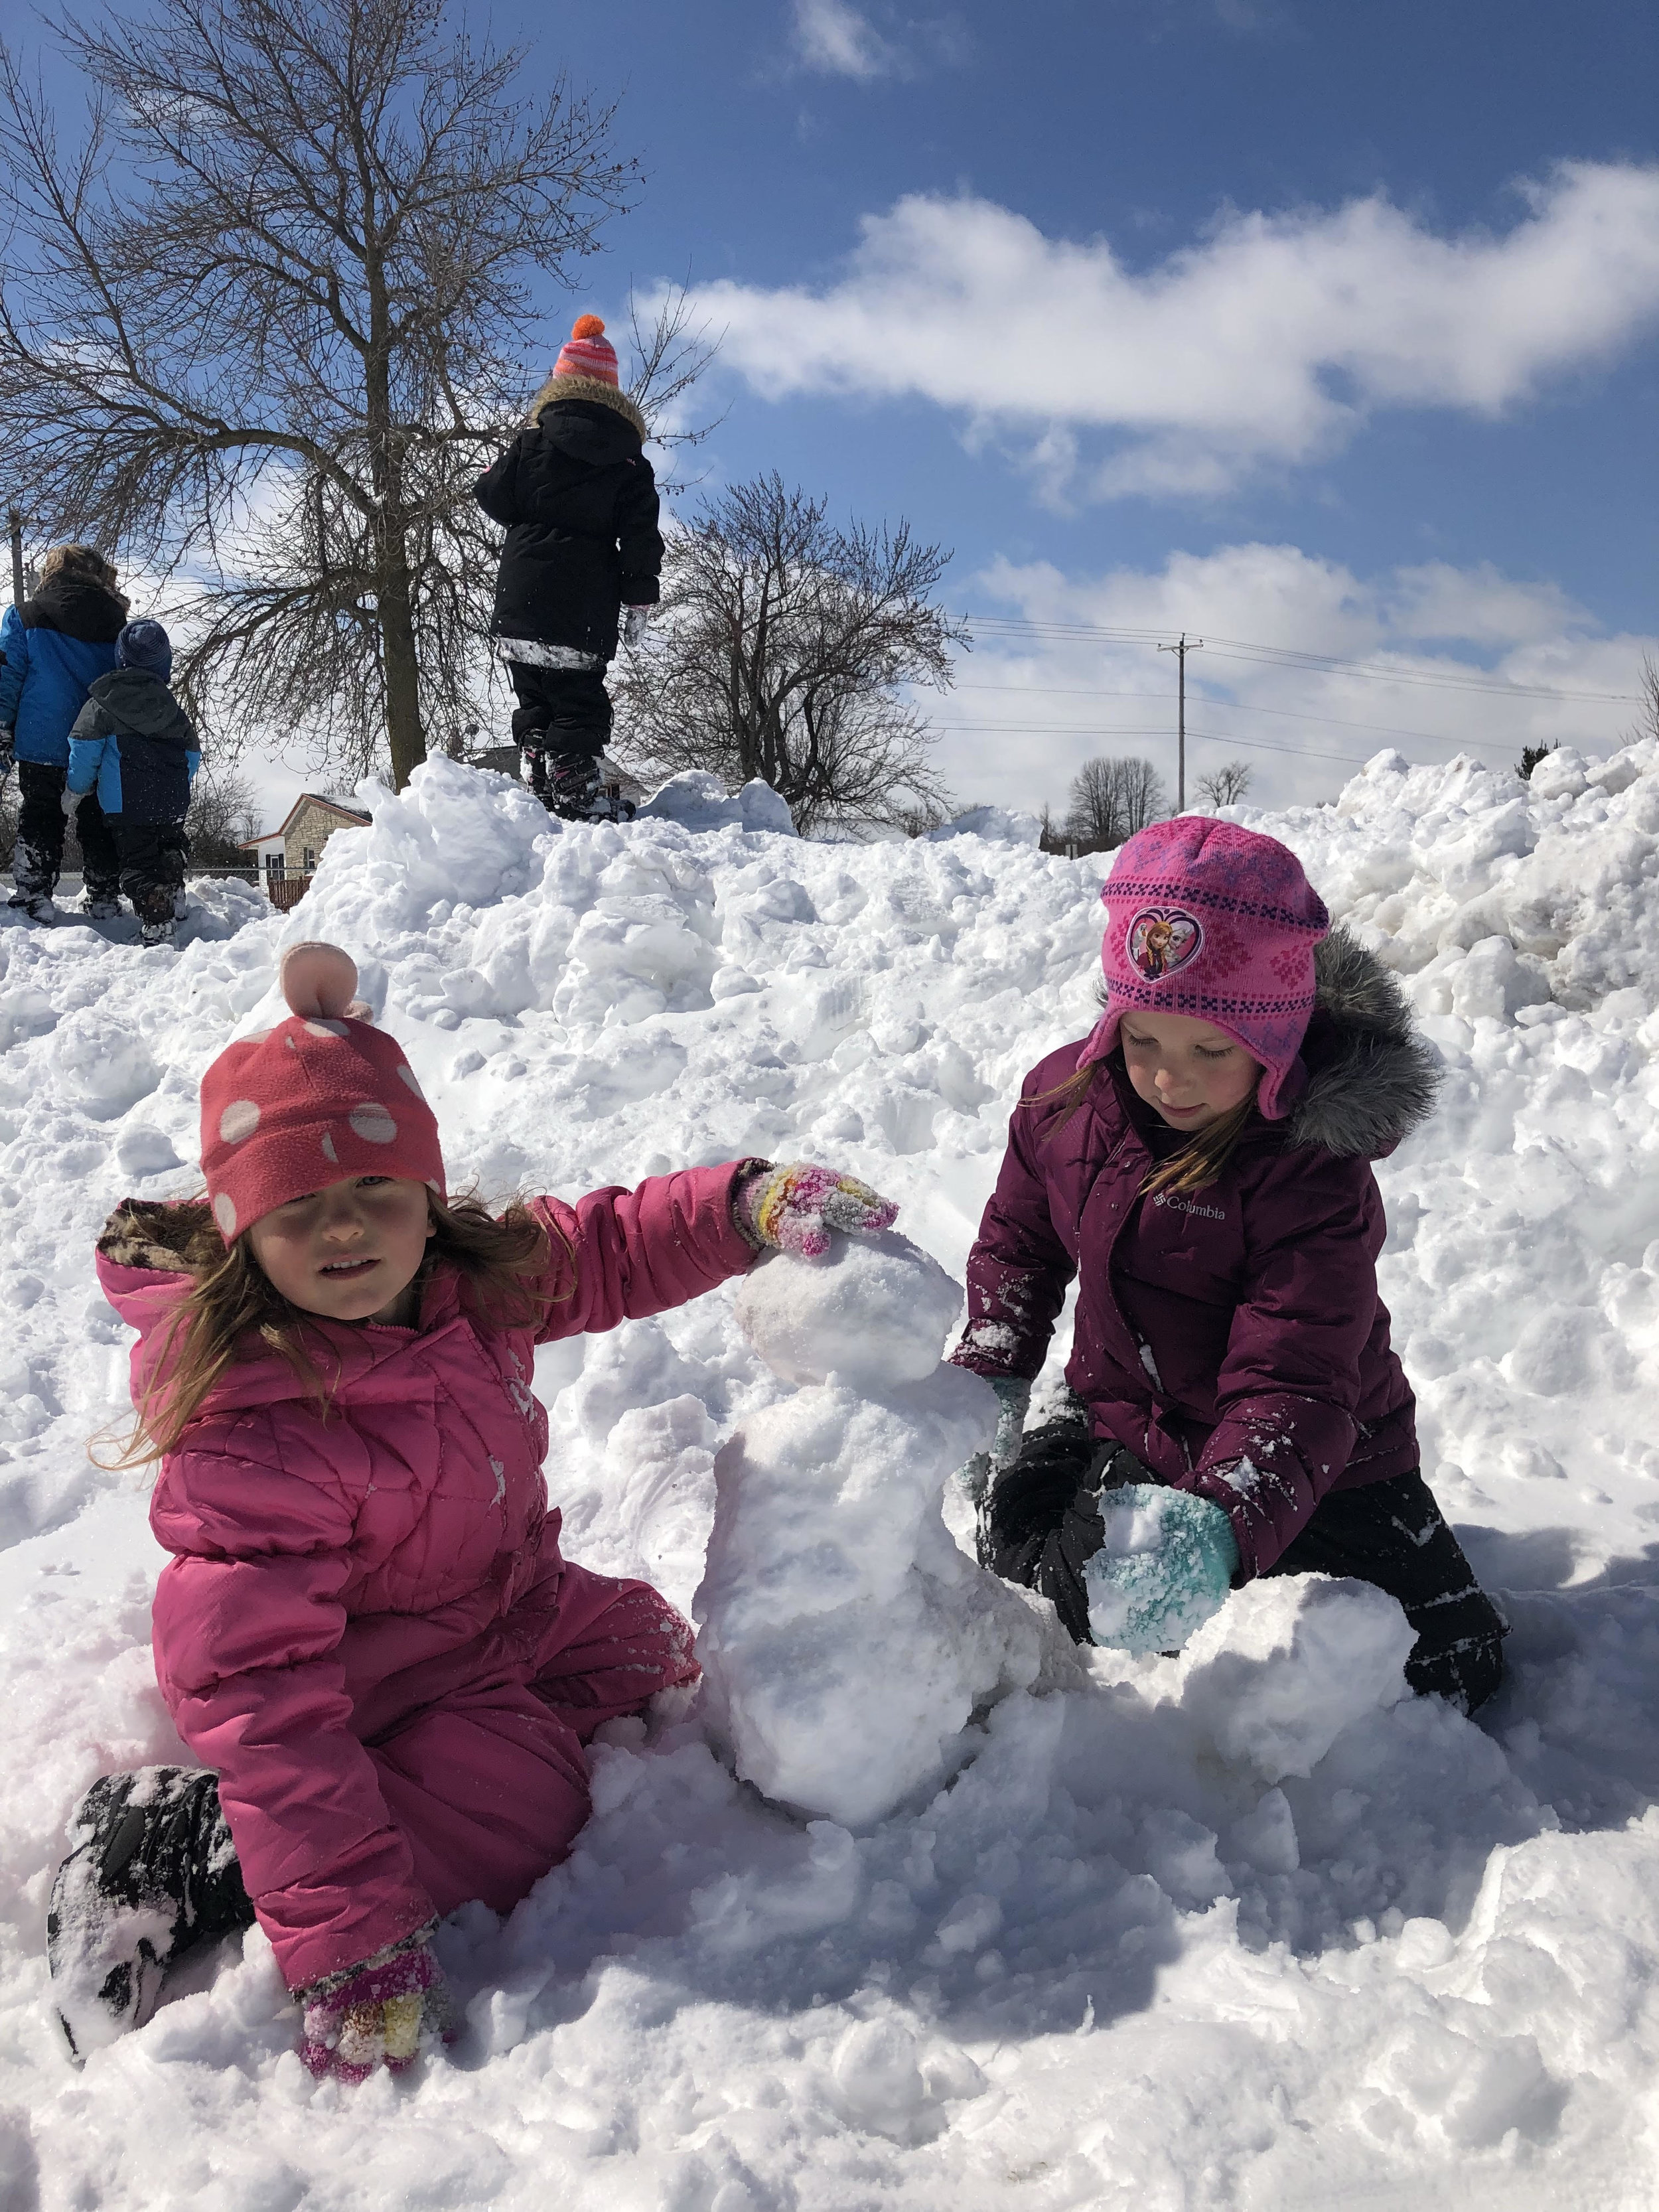 Who ever thought the kids would be builiding snowmen in April!?